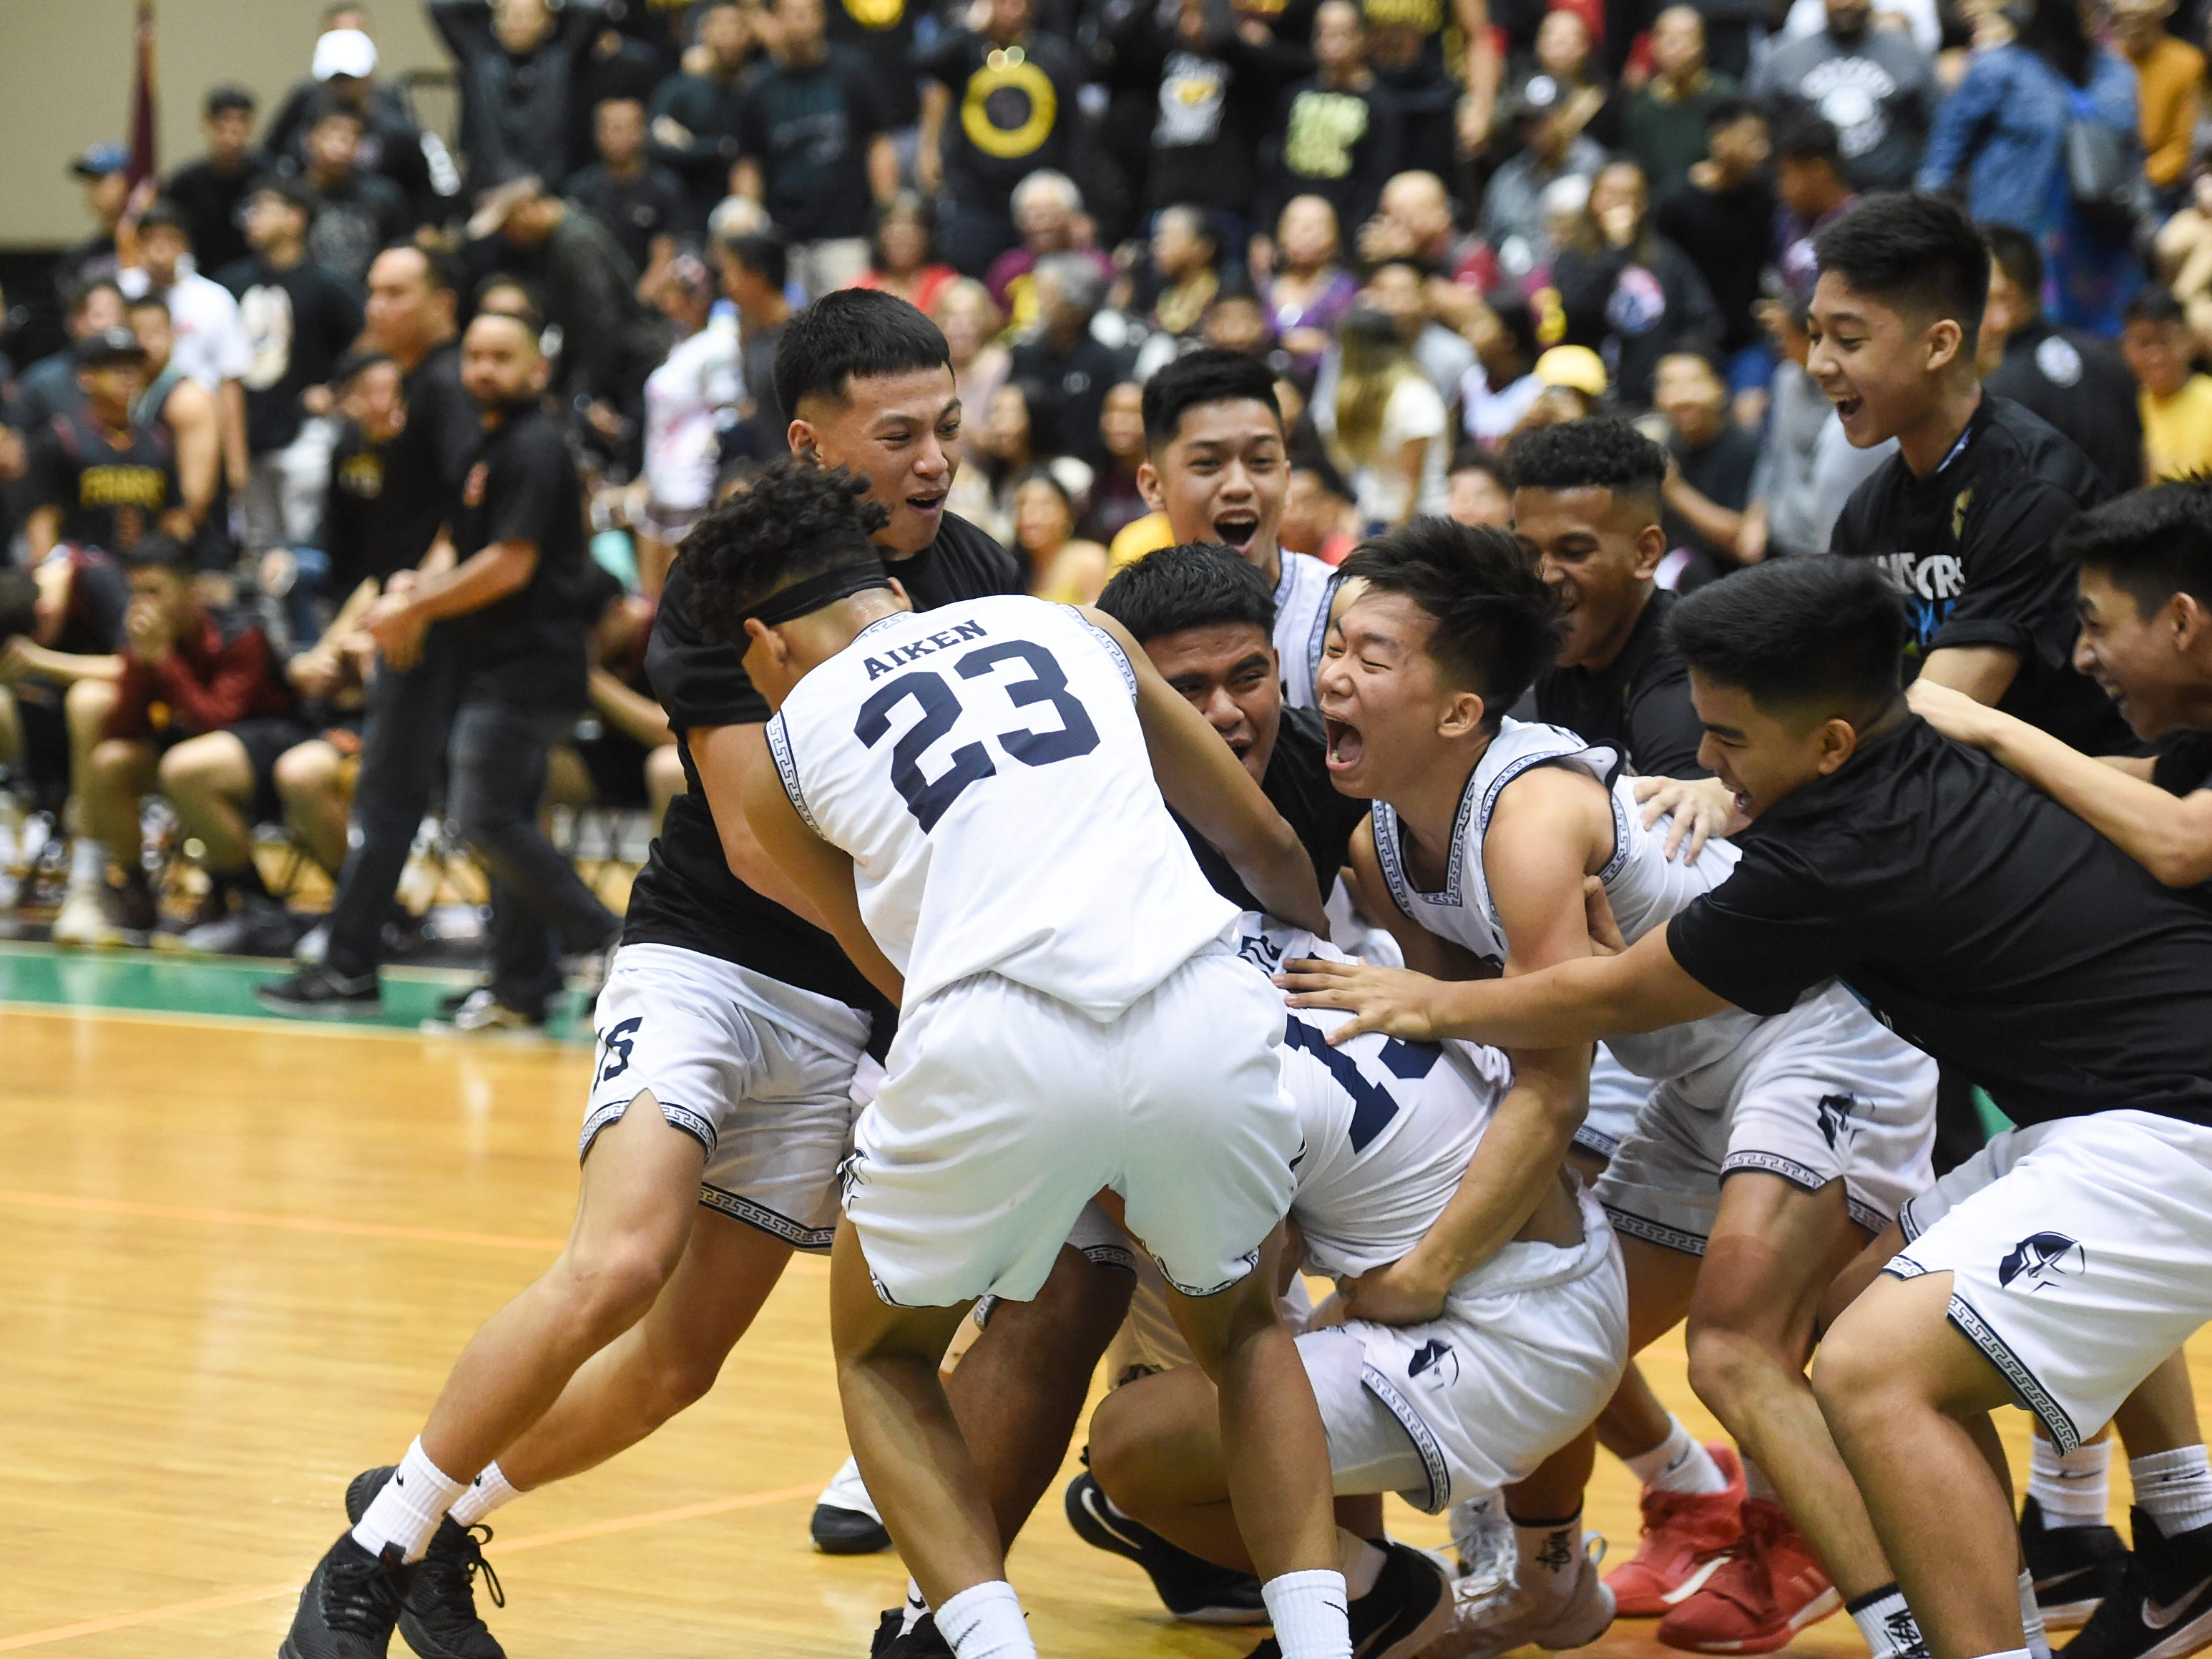 The St. Paul Warriors celebrate their 44-41 IIAAG Boys' Basketball Championship win over the Father Duenas Friars at the University of Guam Calvo Field House in Mangilao, March 15, 2019.